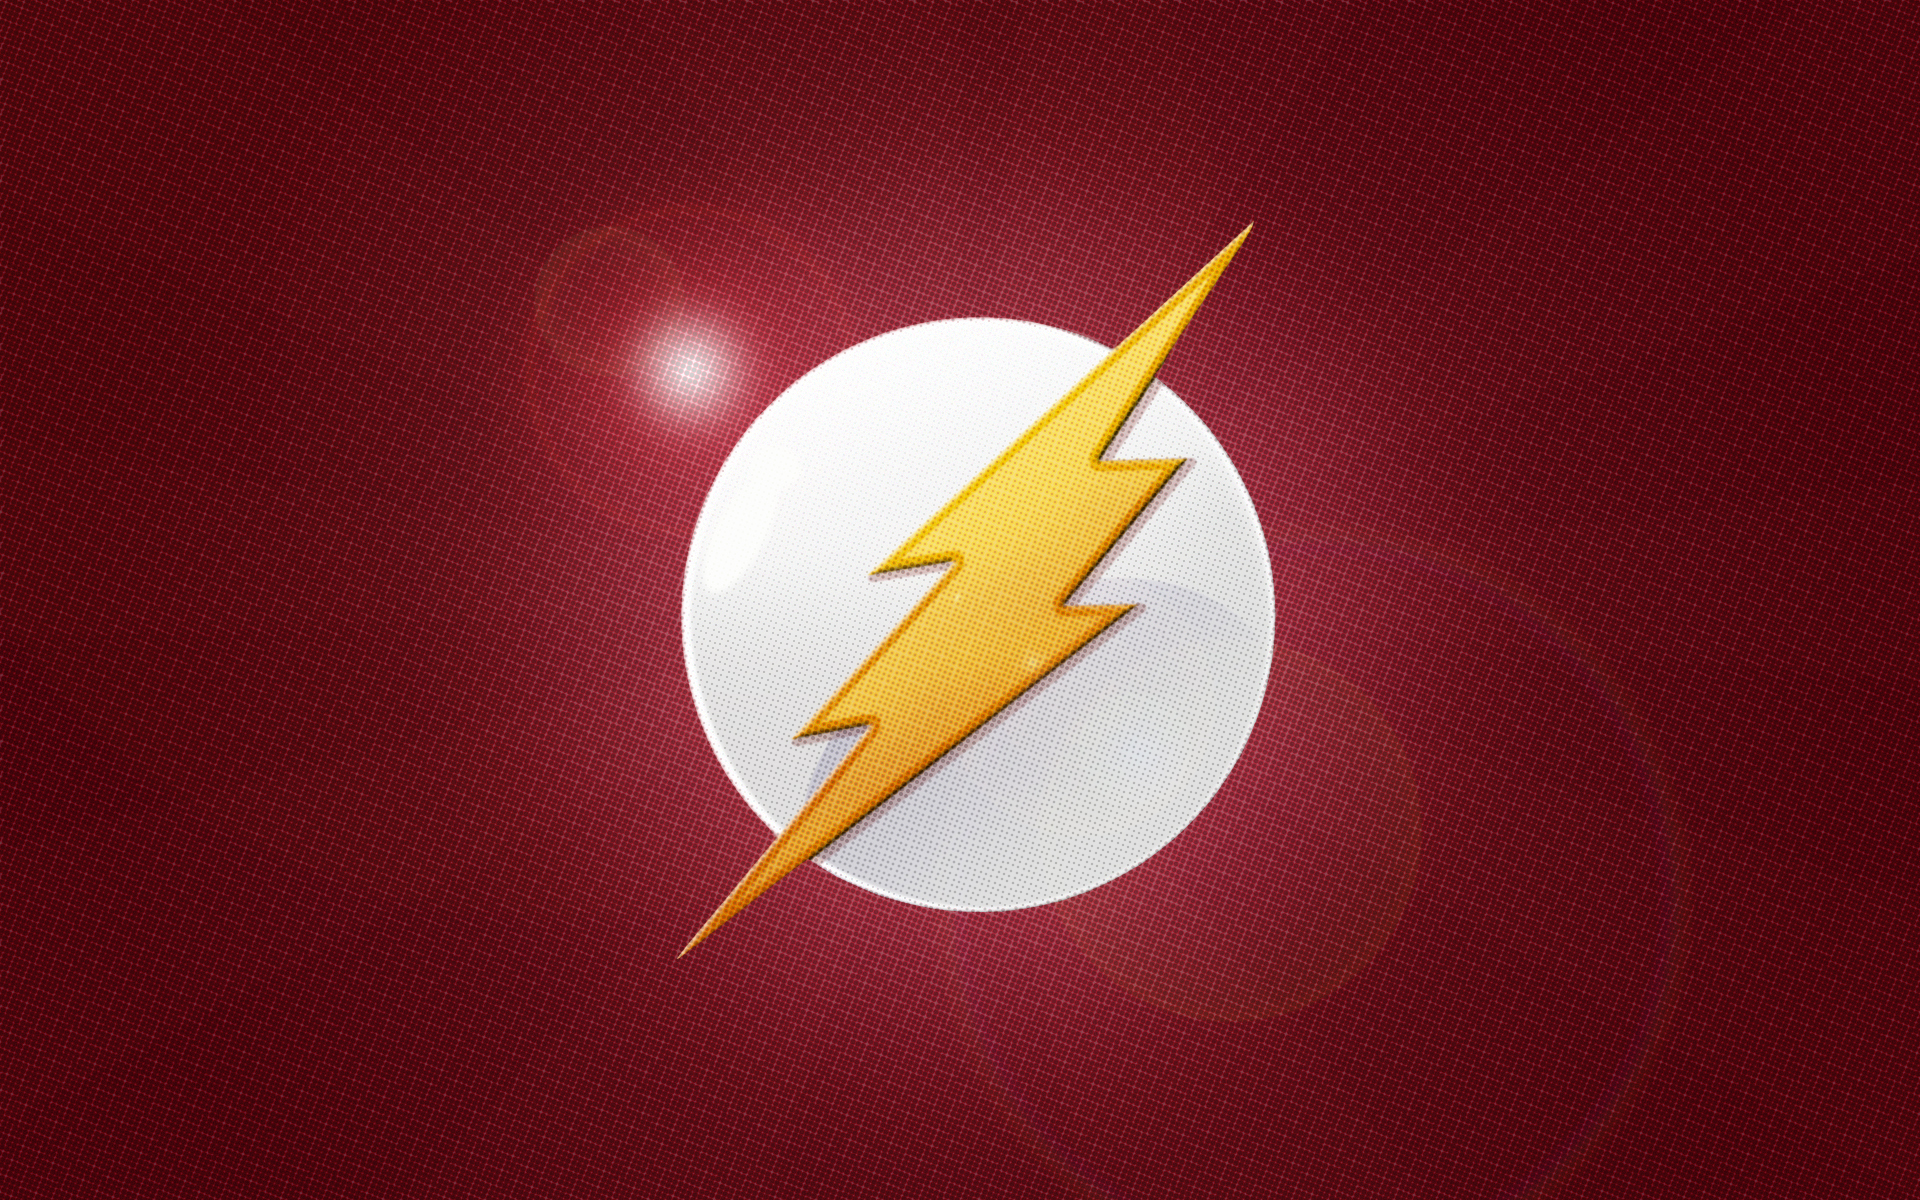 The Flash wallpaper by H Thomson 1920x1200